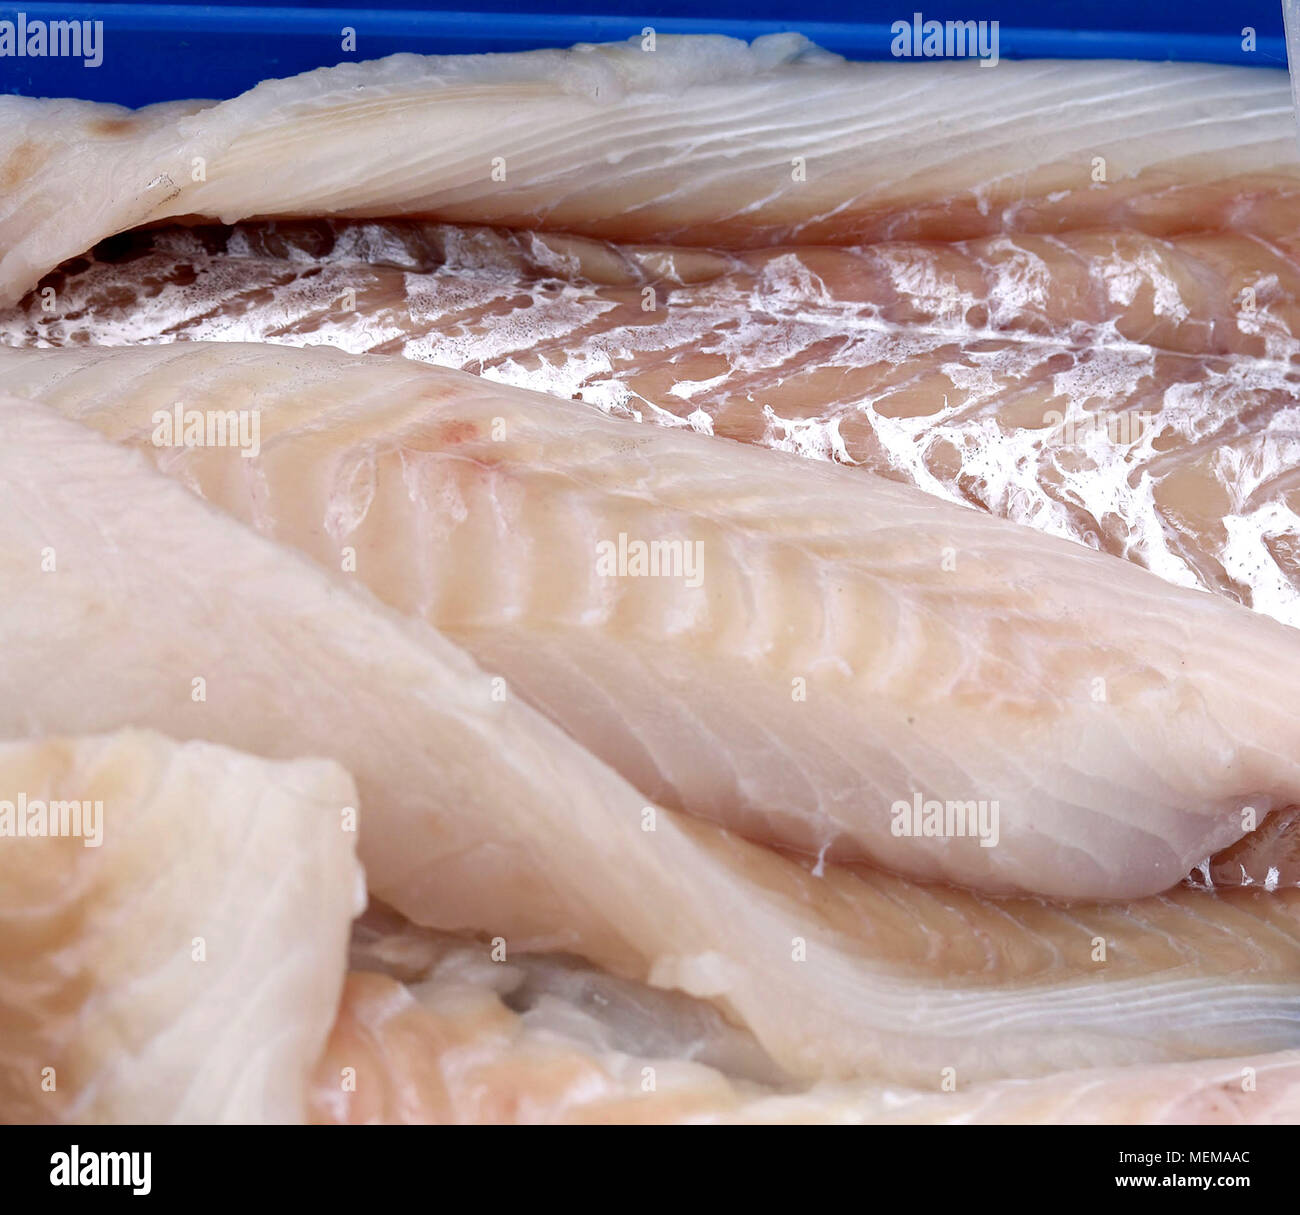 A pile of cod fish at the fish market Stock Photo: 181156036